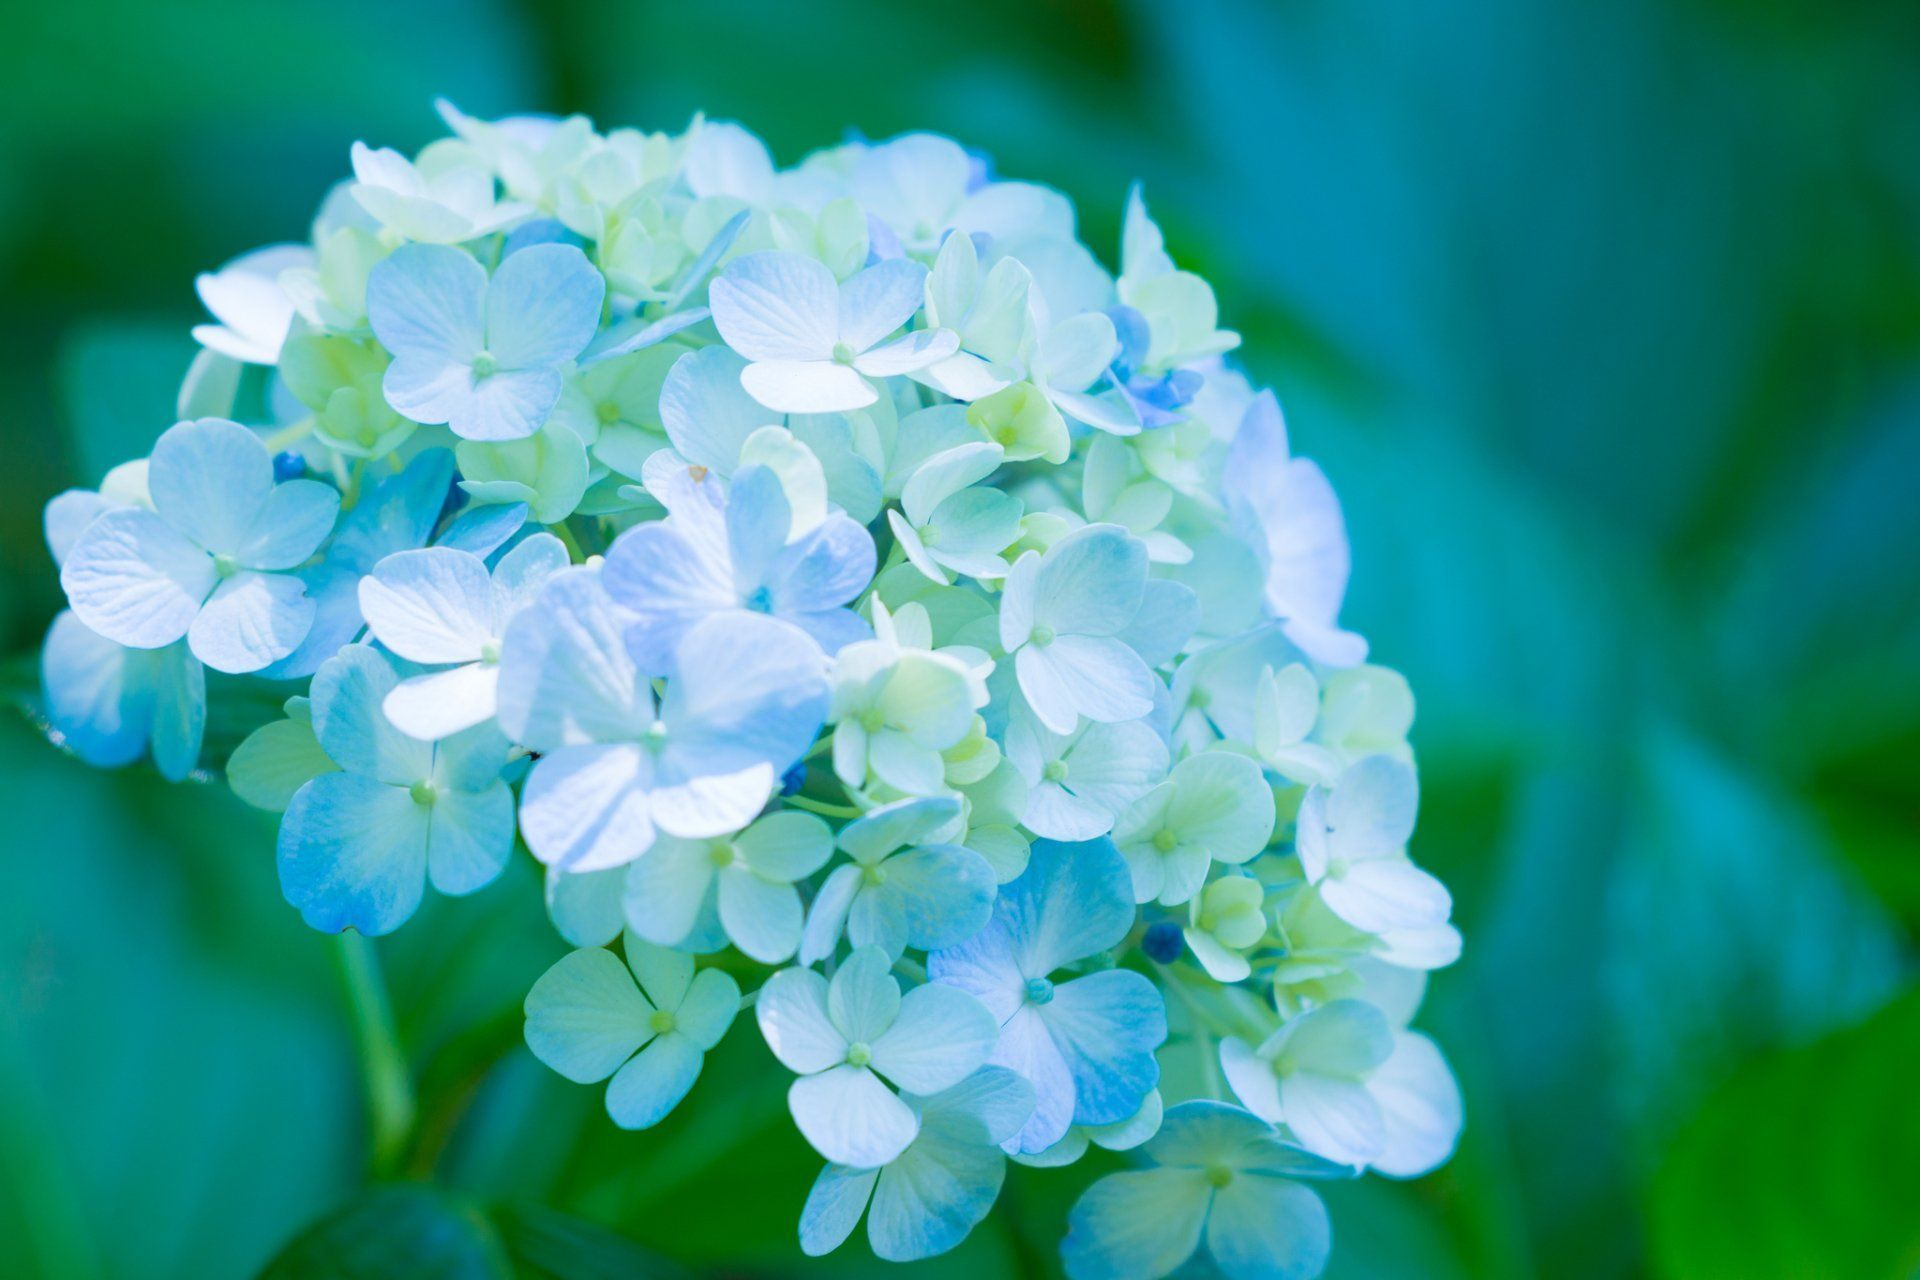 Earth Hydrangea Flowers Flower Close Up Blue Flower Nature Wallpaper Blue Close Blue Close Closeup In 2020 Flower Close Up Blue Flower Wallpaper Hydrangea Flower